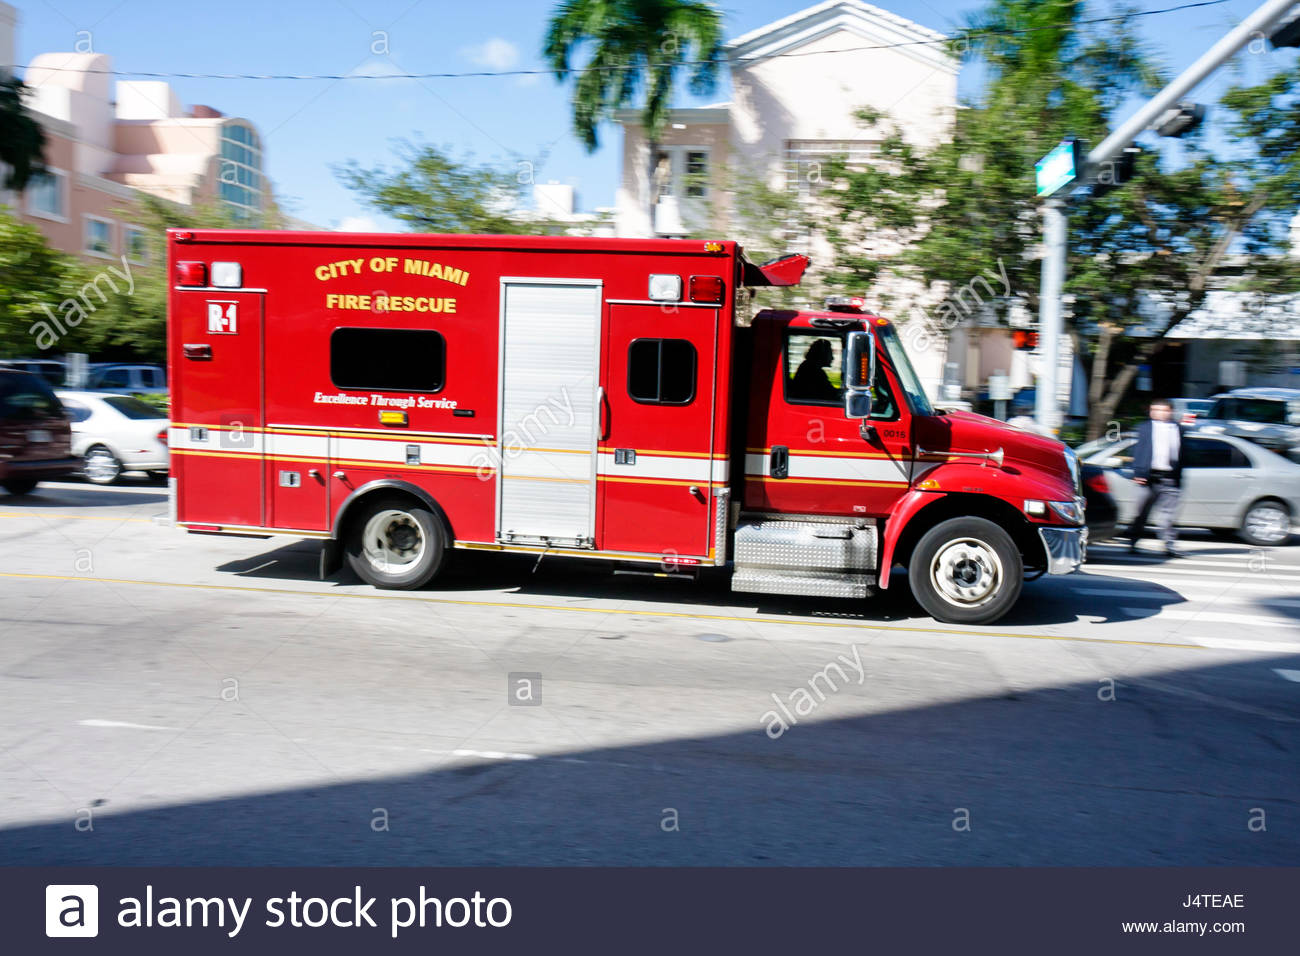 MiamiMiami Florida-Dade Fire Rescue truck emergency vehicle ambulance first responder paramedic EMT - Stock Image